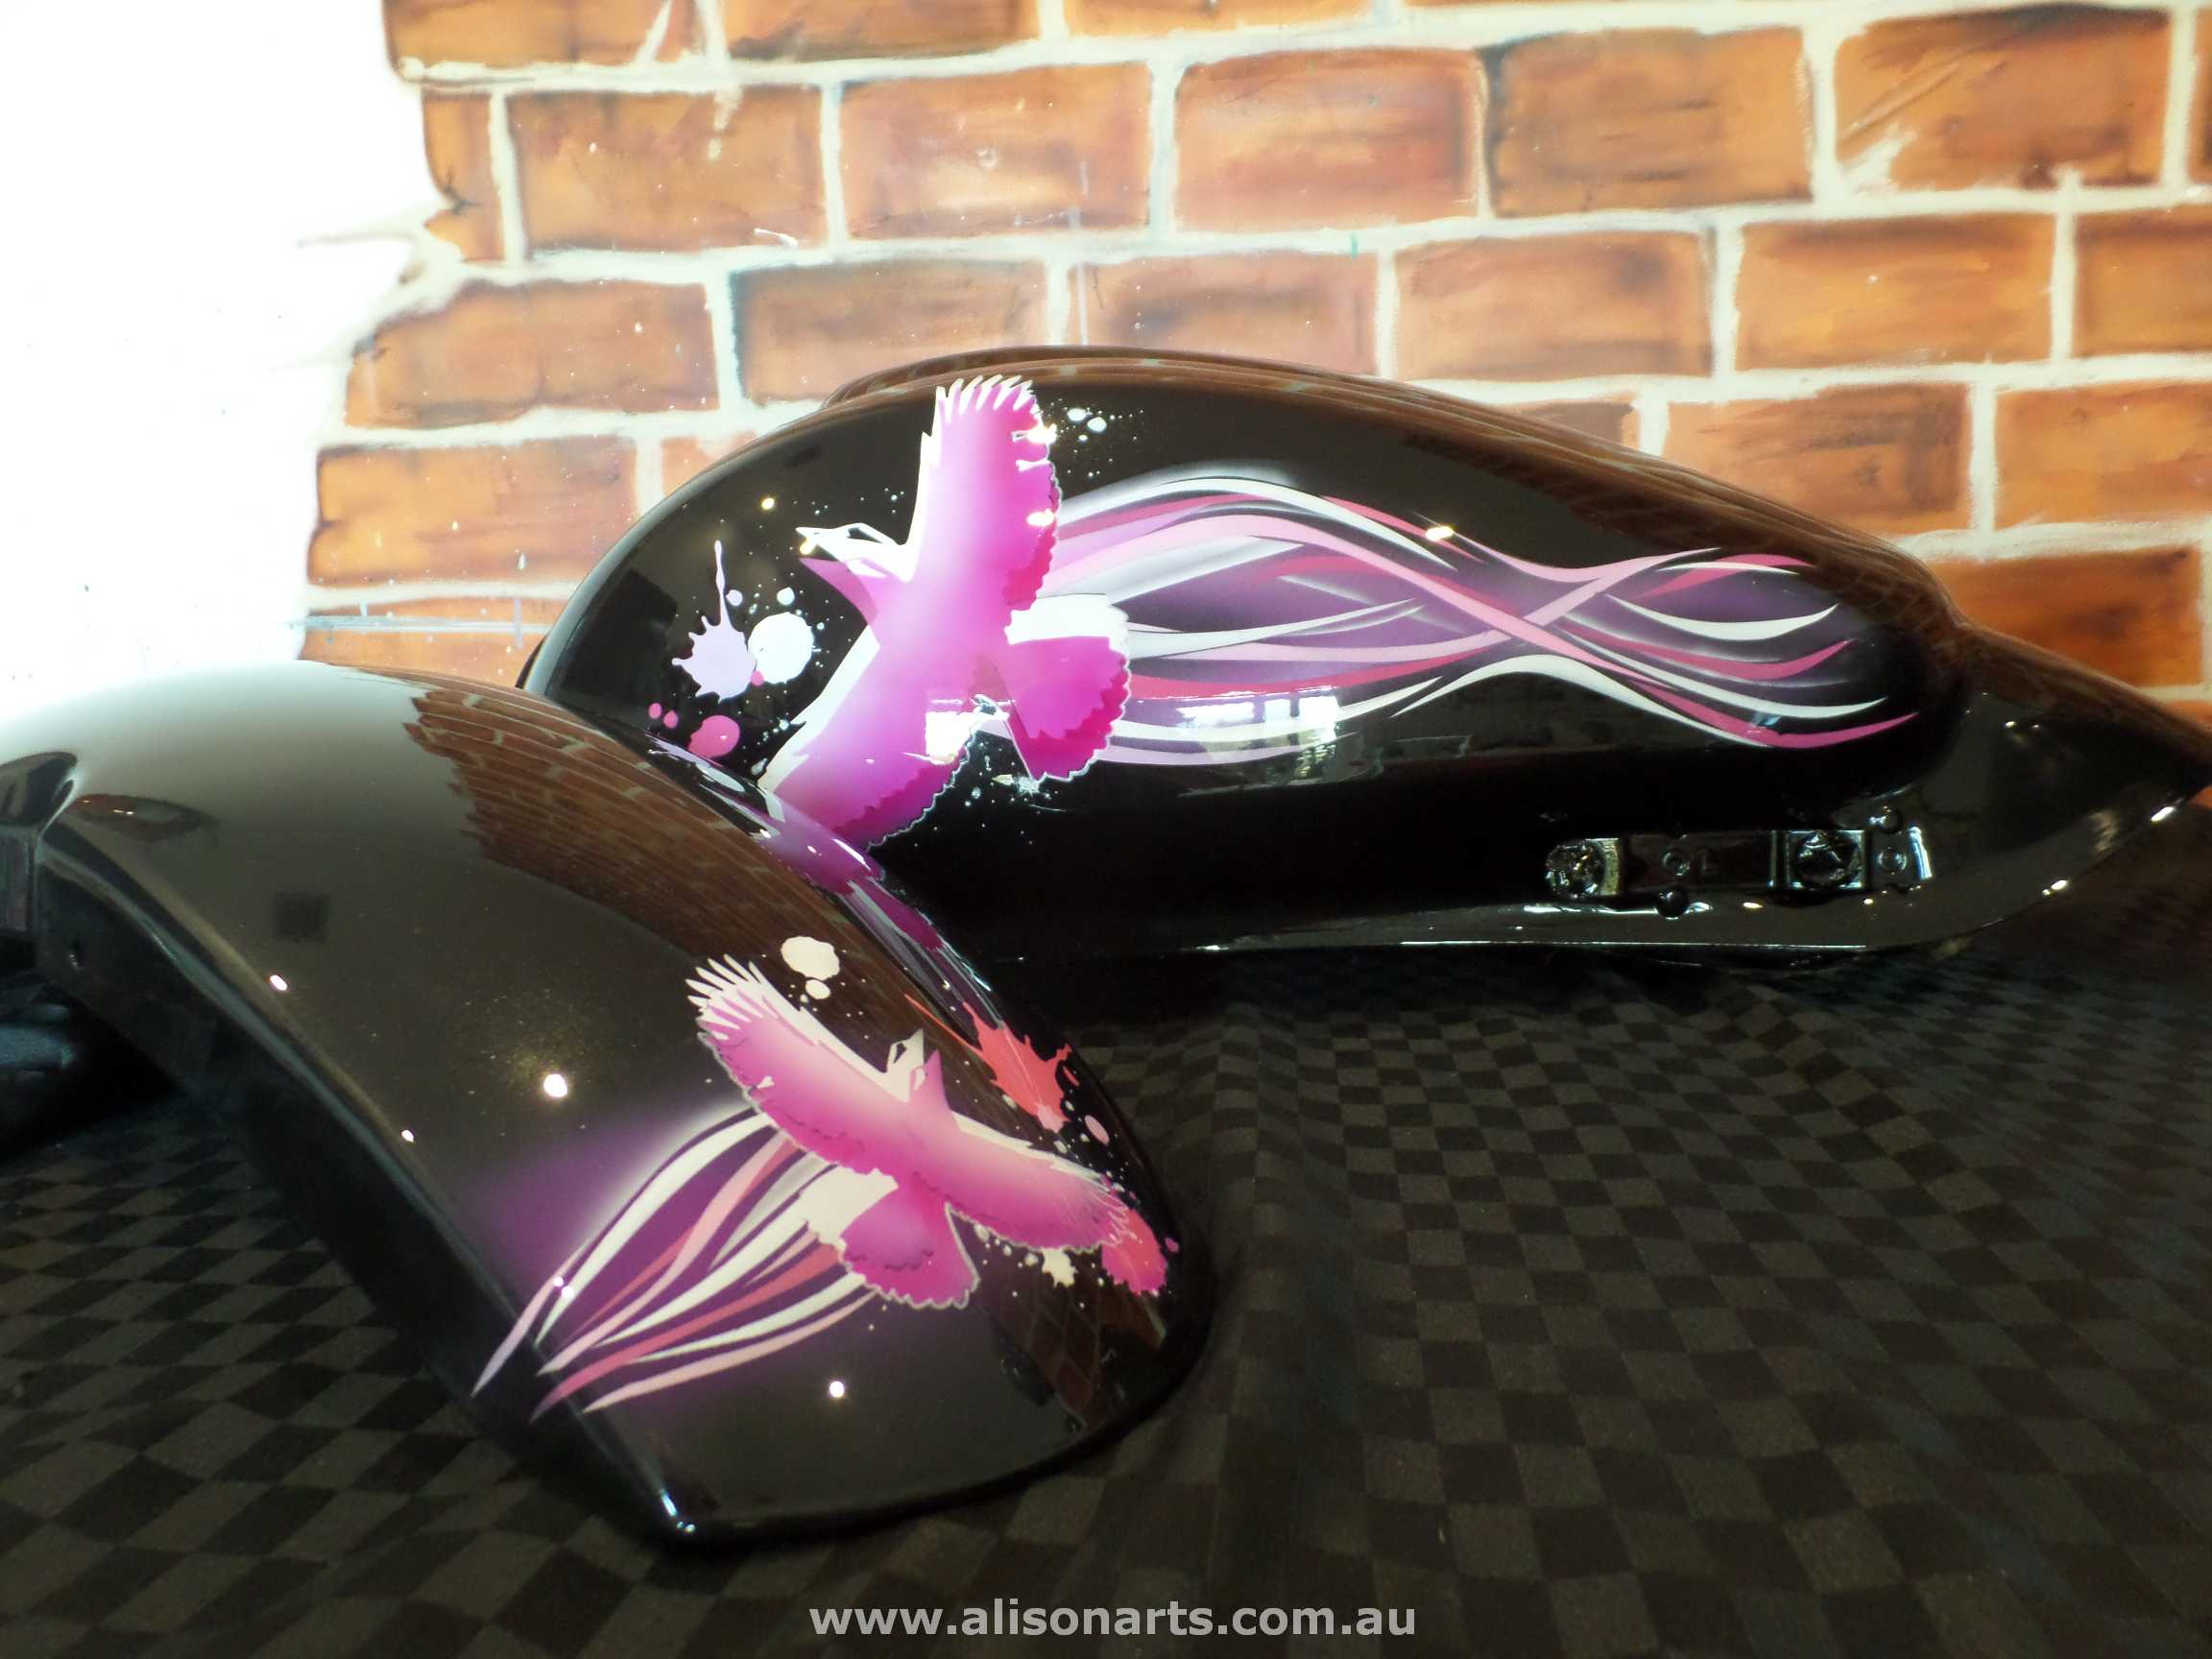 airbrushed pink kookaburra motorcycle